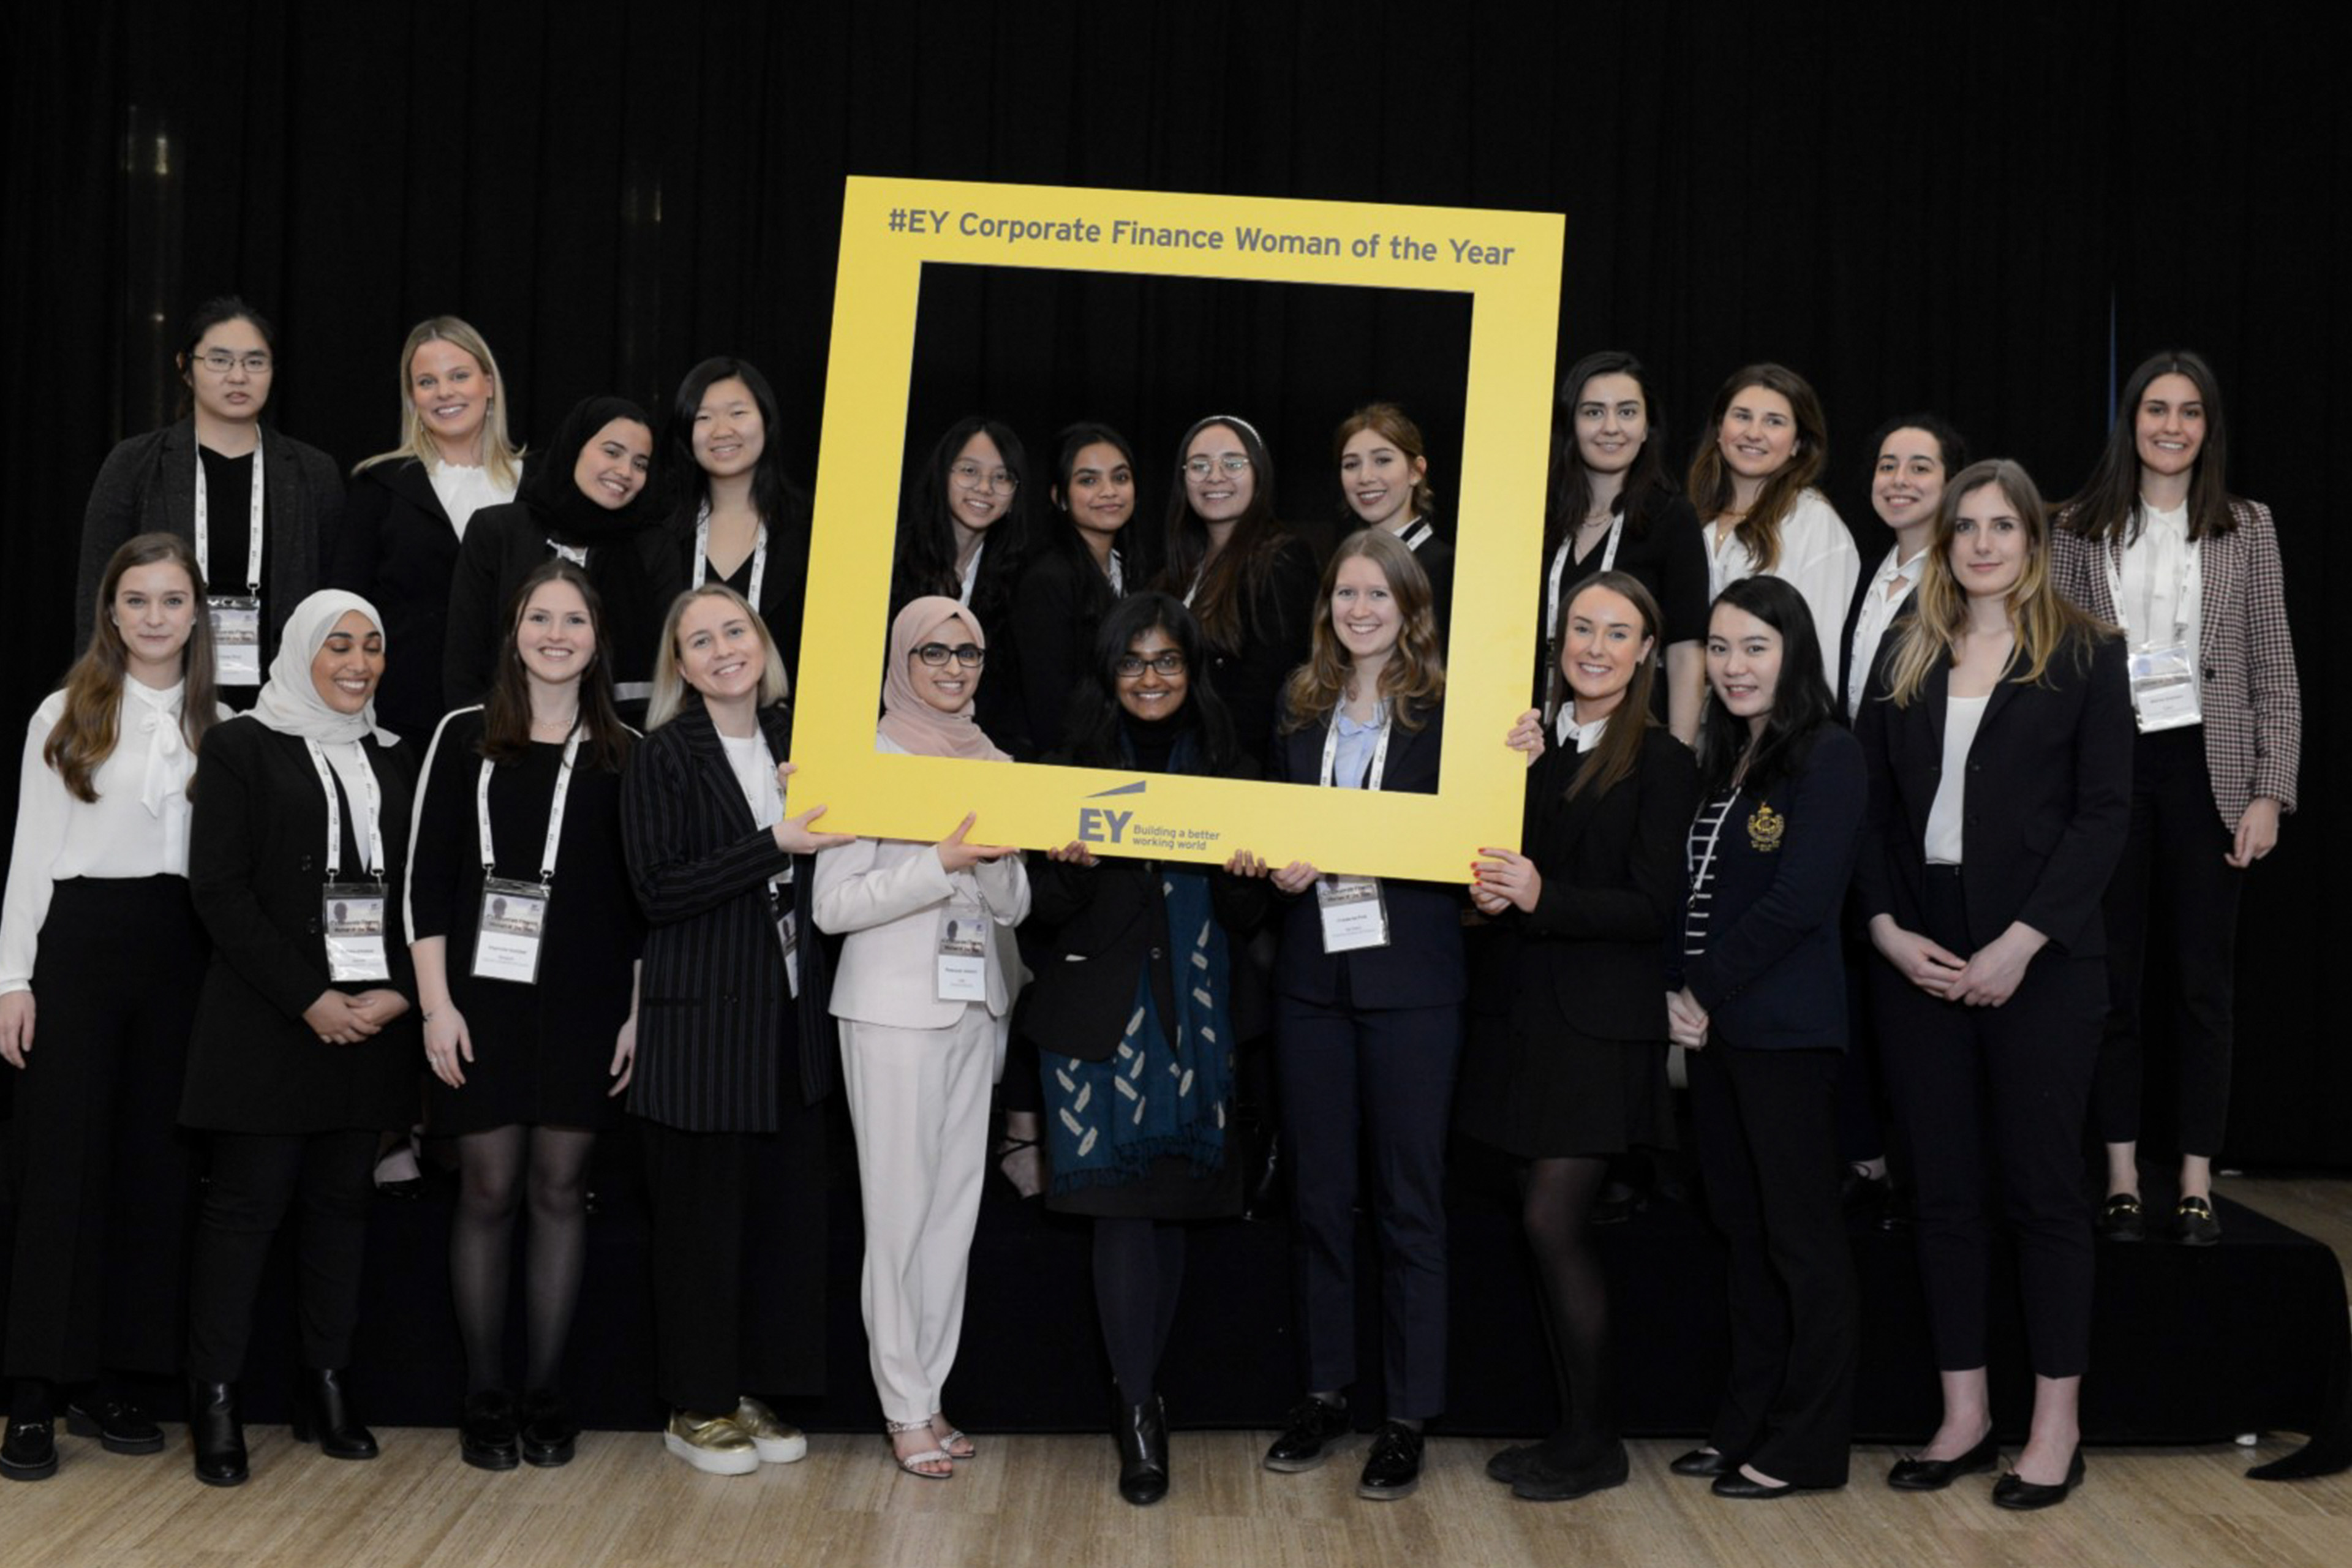 EY corporate Finance woman of the year